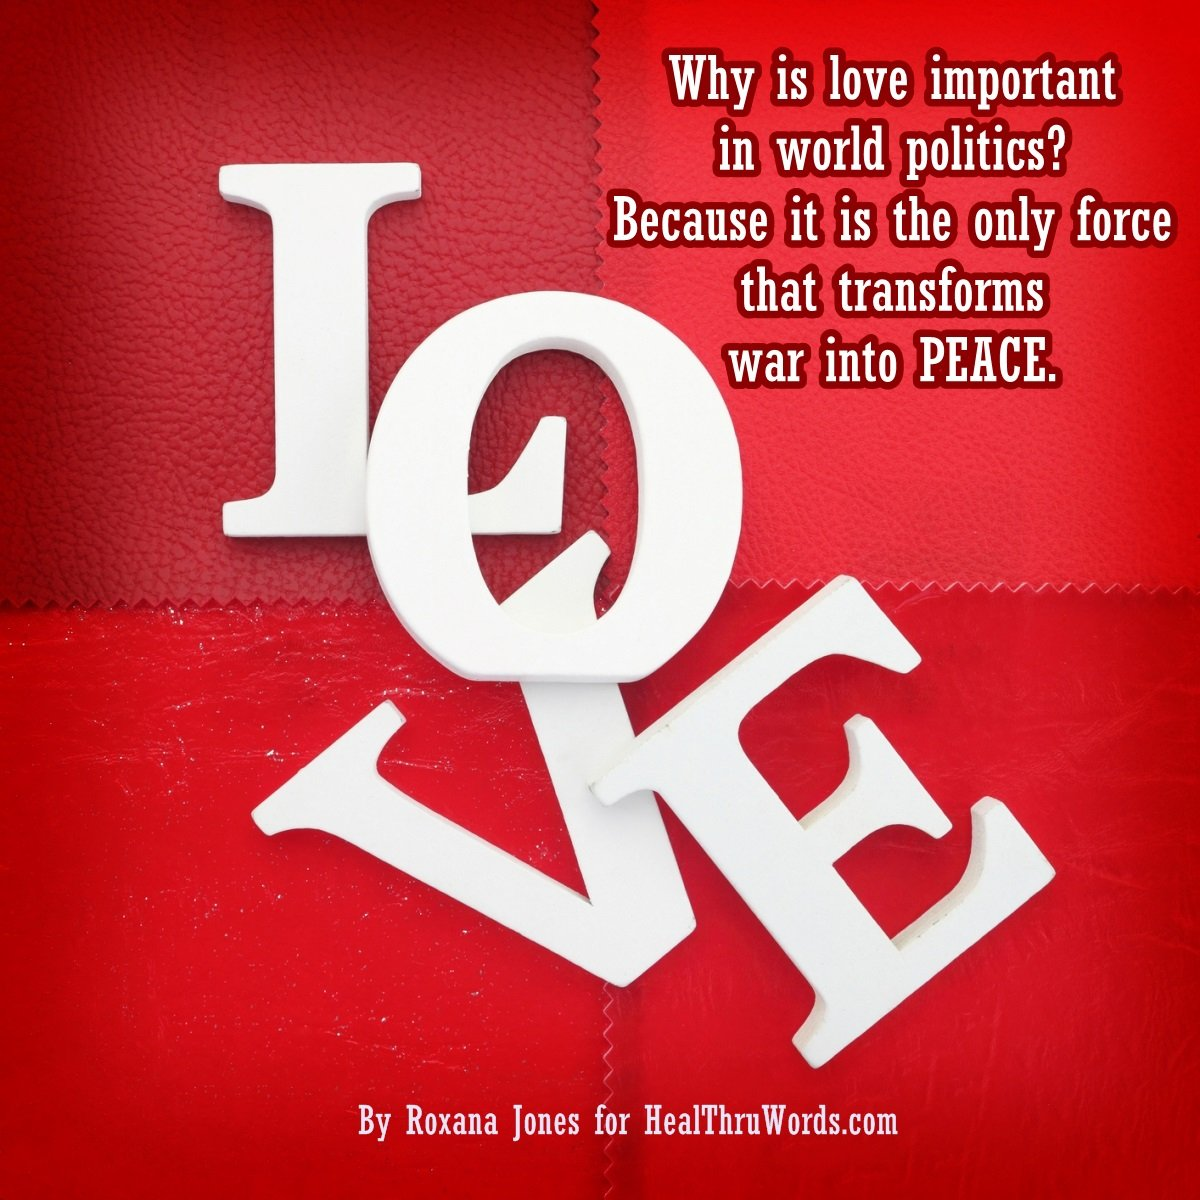 Inspirational Image: What LOVE has to do with it? Part 2